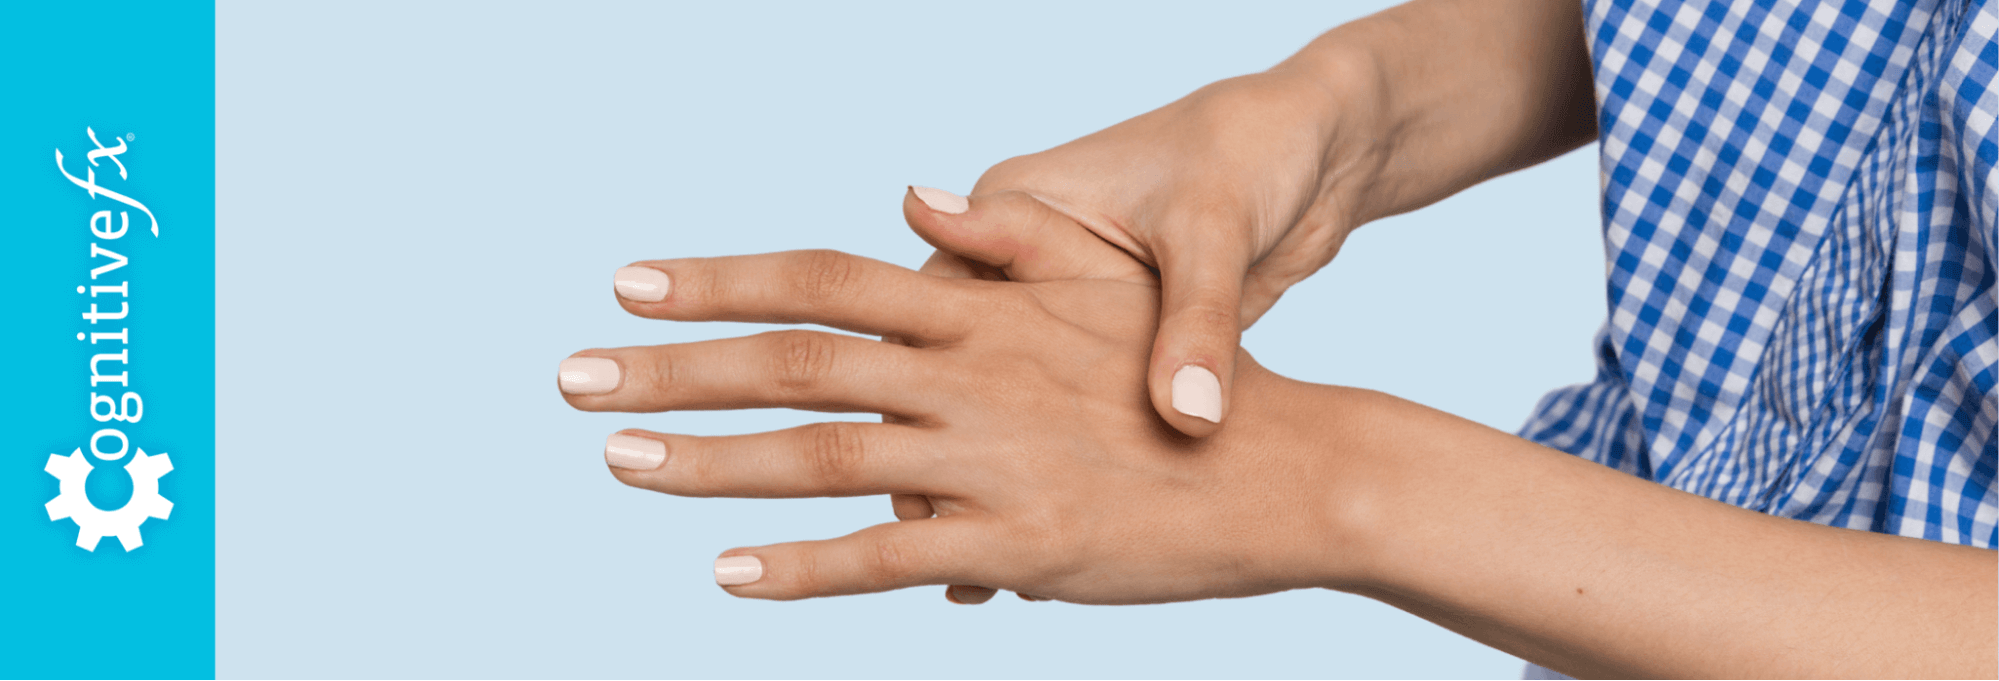 Why Post-Concussion Syndrome Causes Tingling Hands (And What to Do)